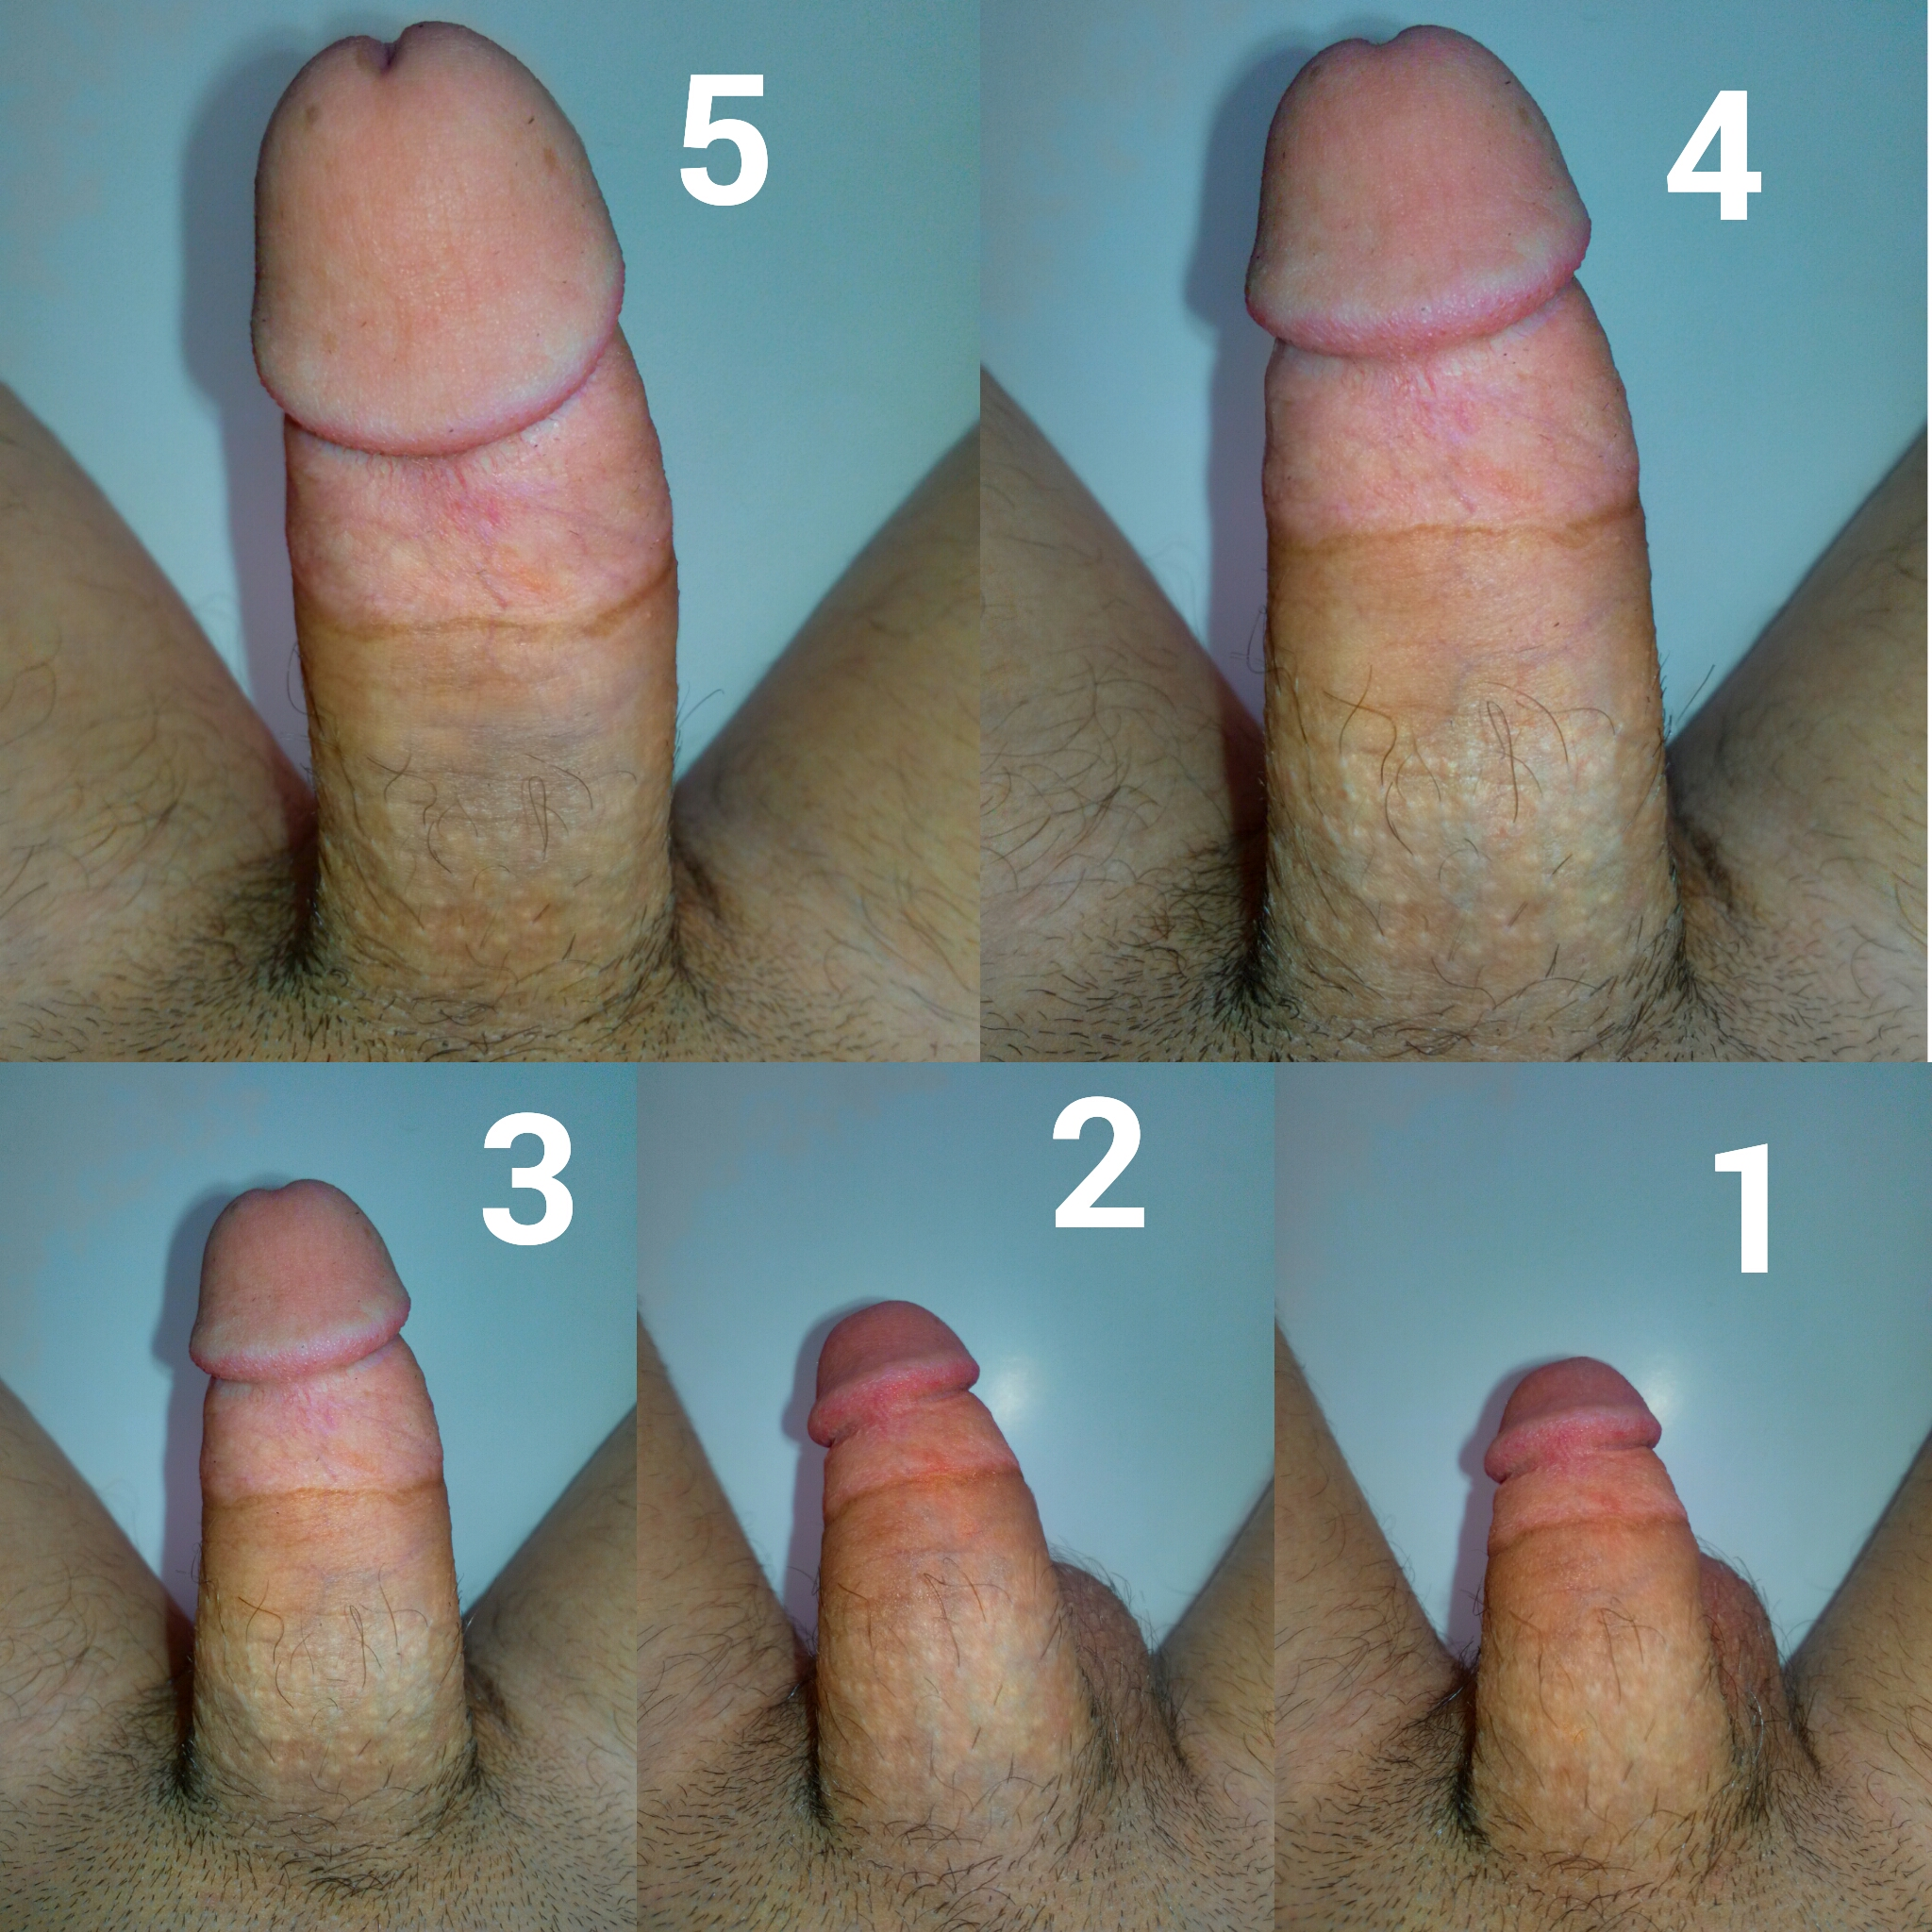 penis-compared-to-gfs-foot-xxx-imagein-school